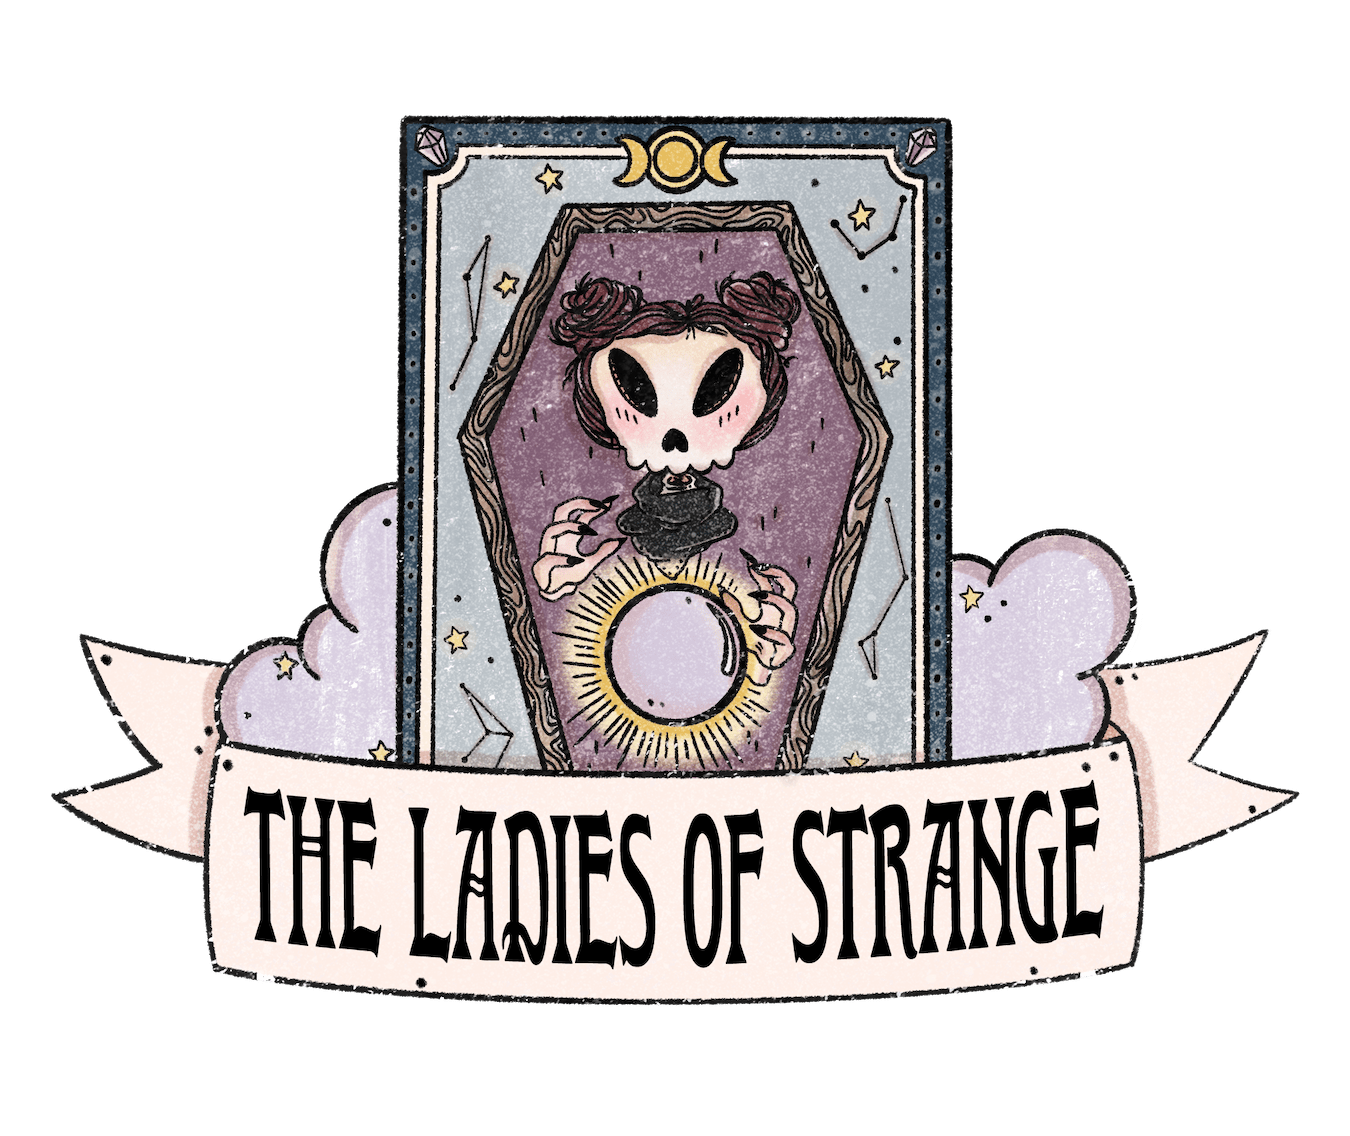 The Ladies of Strange